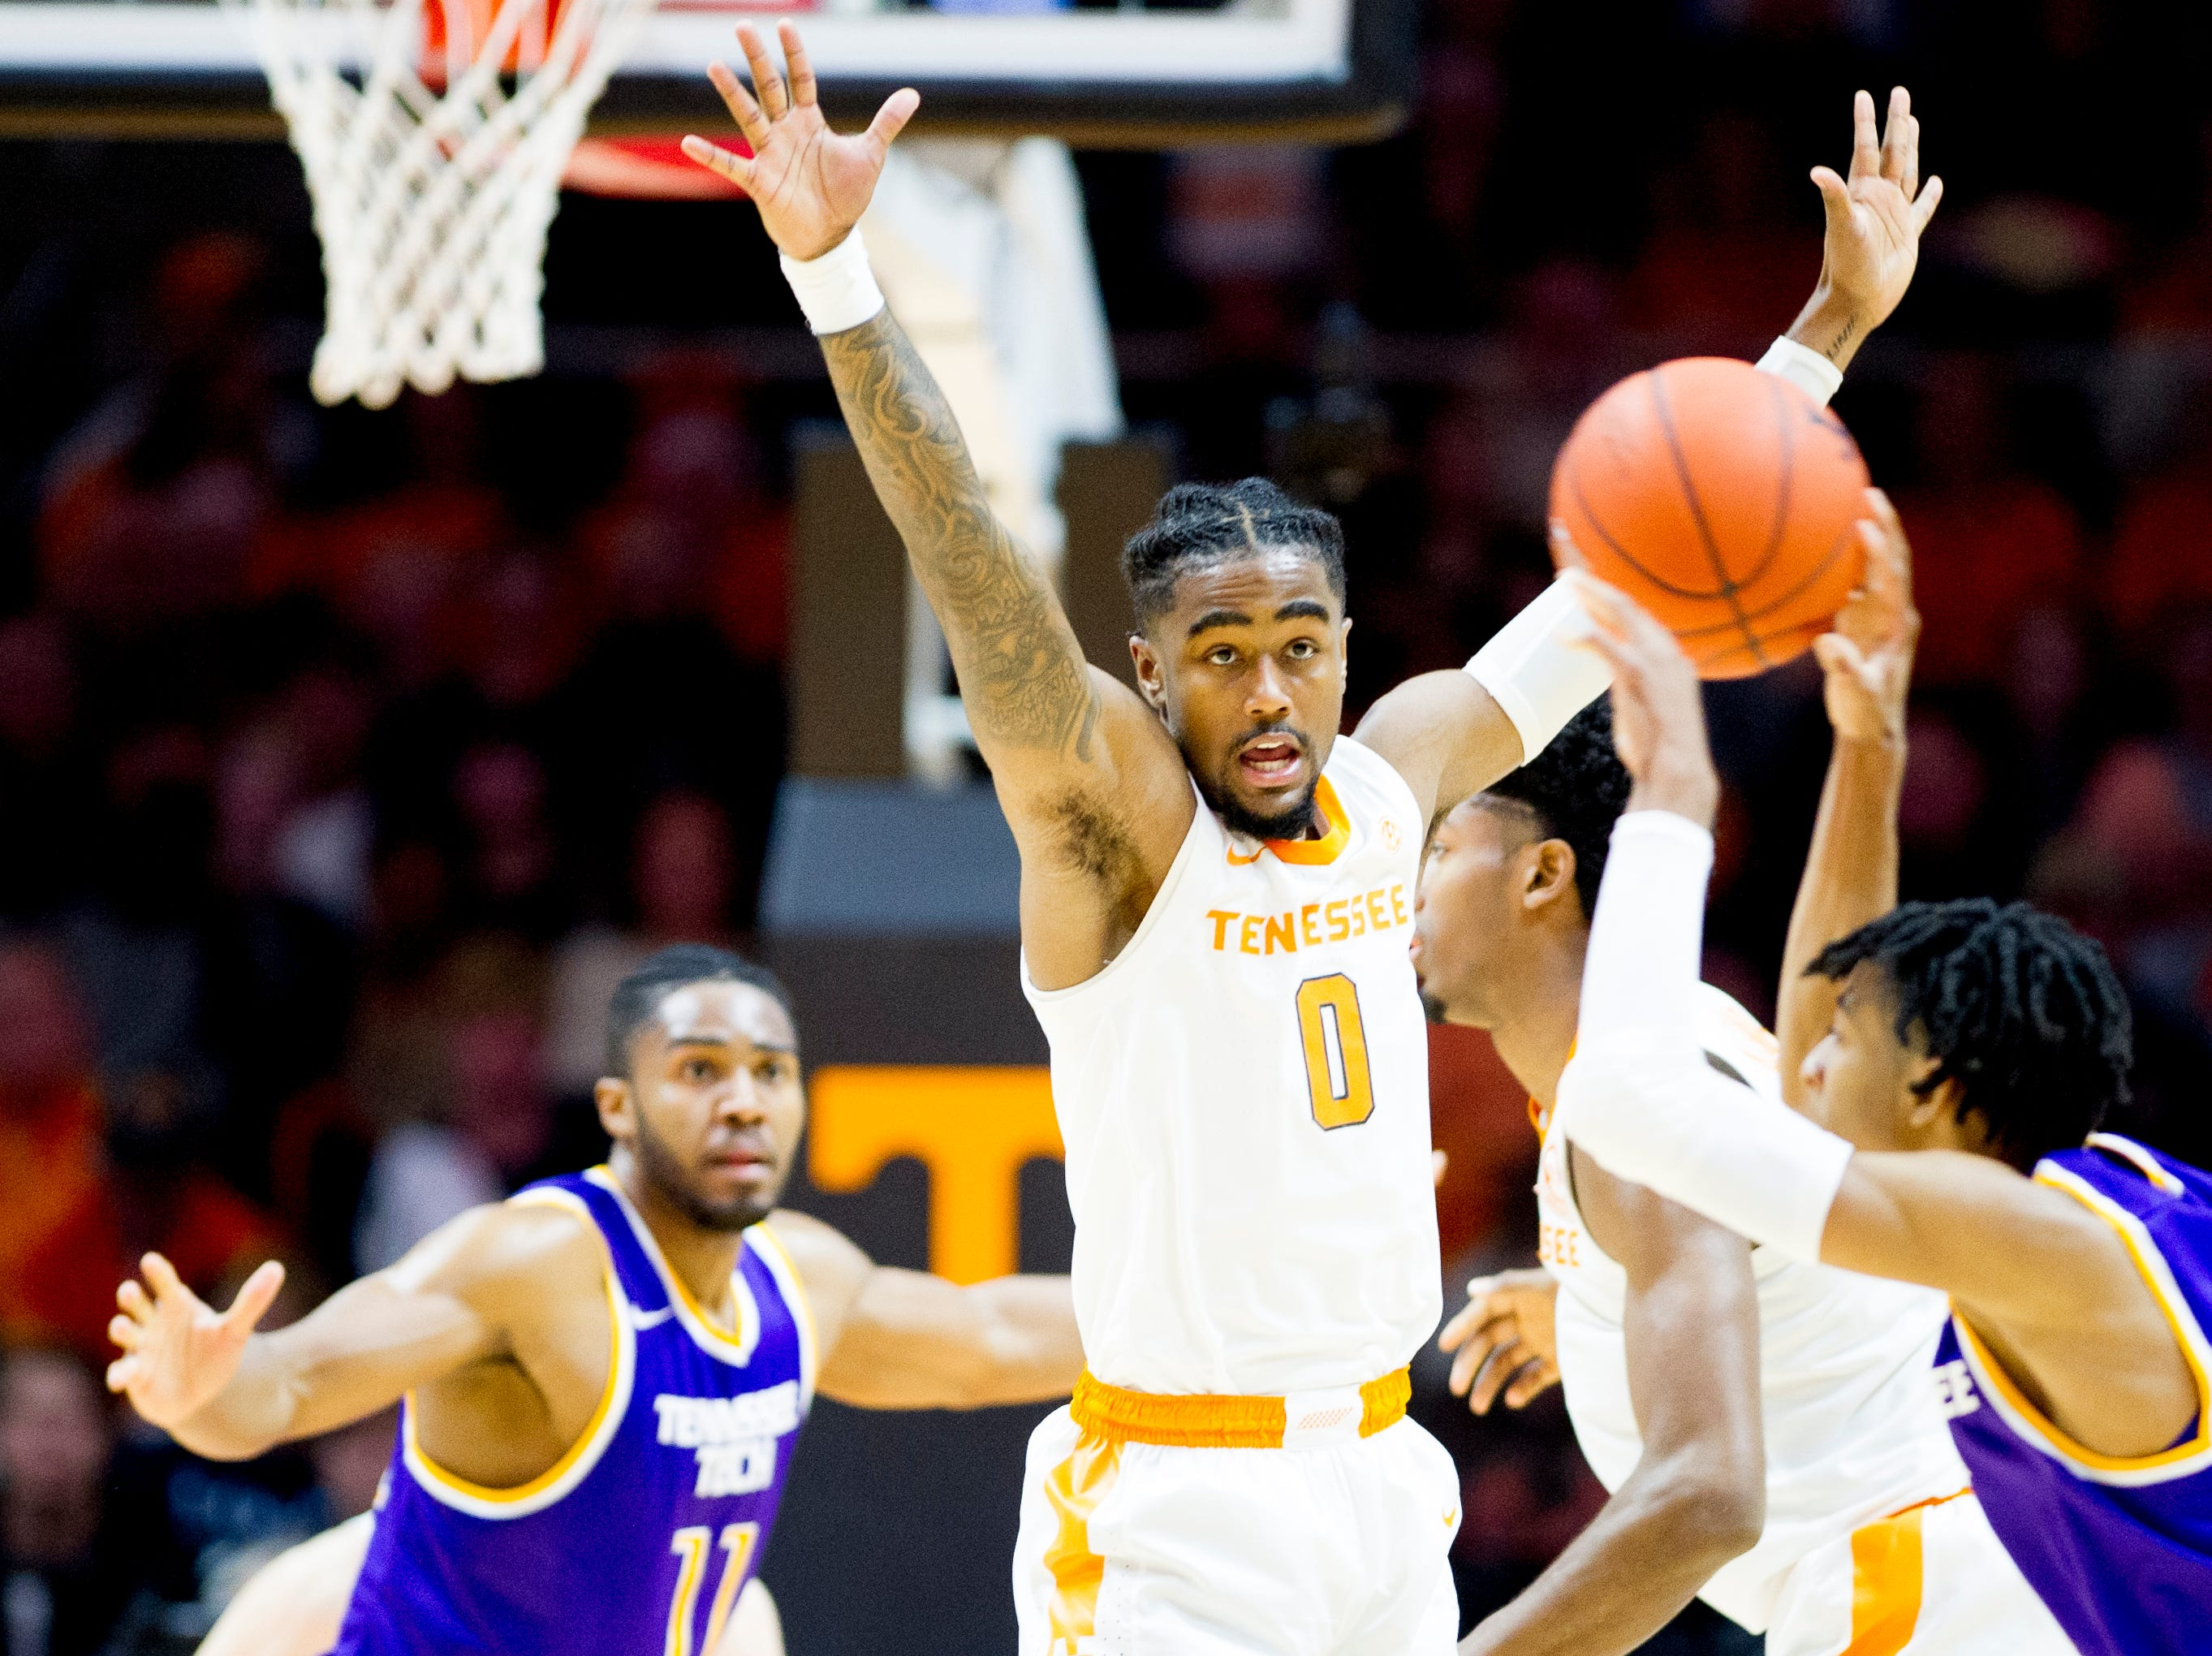 Tennessee guard Jordan Bone (0) defends against a pass by Tennessee Tech guard Jr. Clay (4) during a game between Tennessee and Tennessee Tech at Thompson-Boling Arena in Knoxville, Tennessee on Saturday, December 29, 2018.